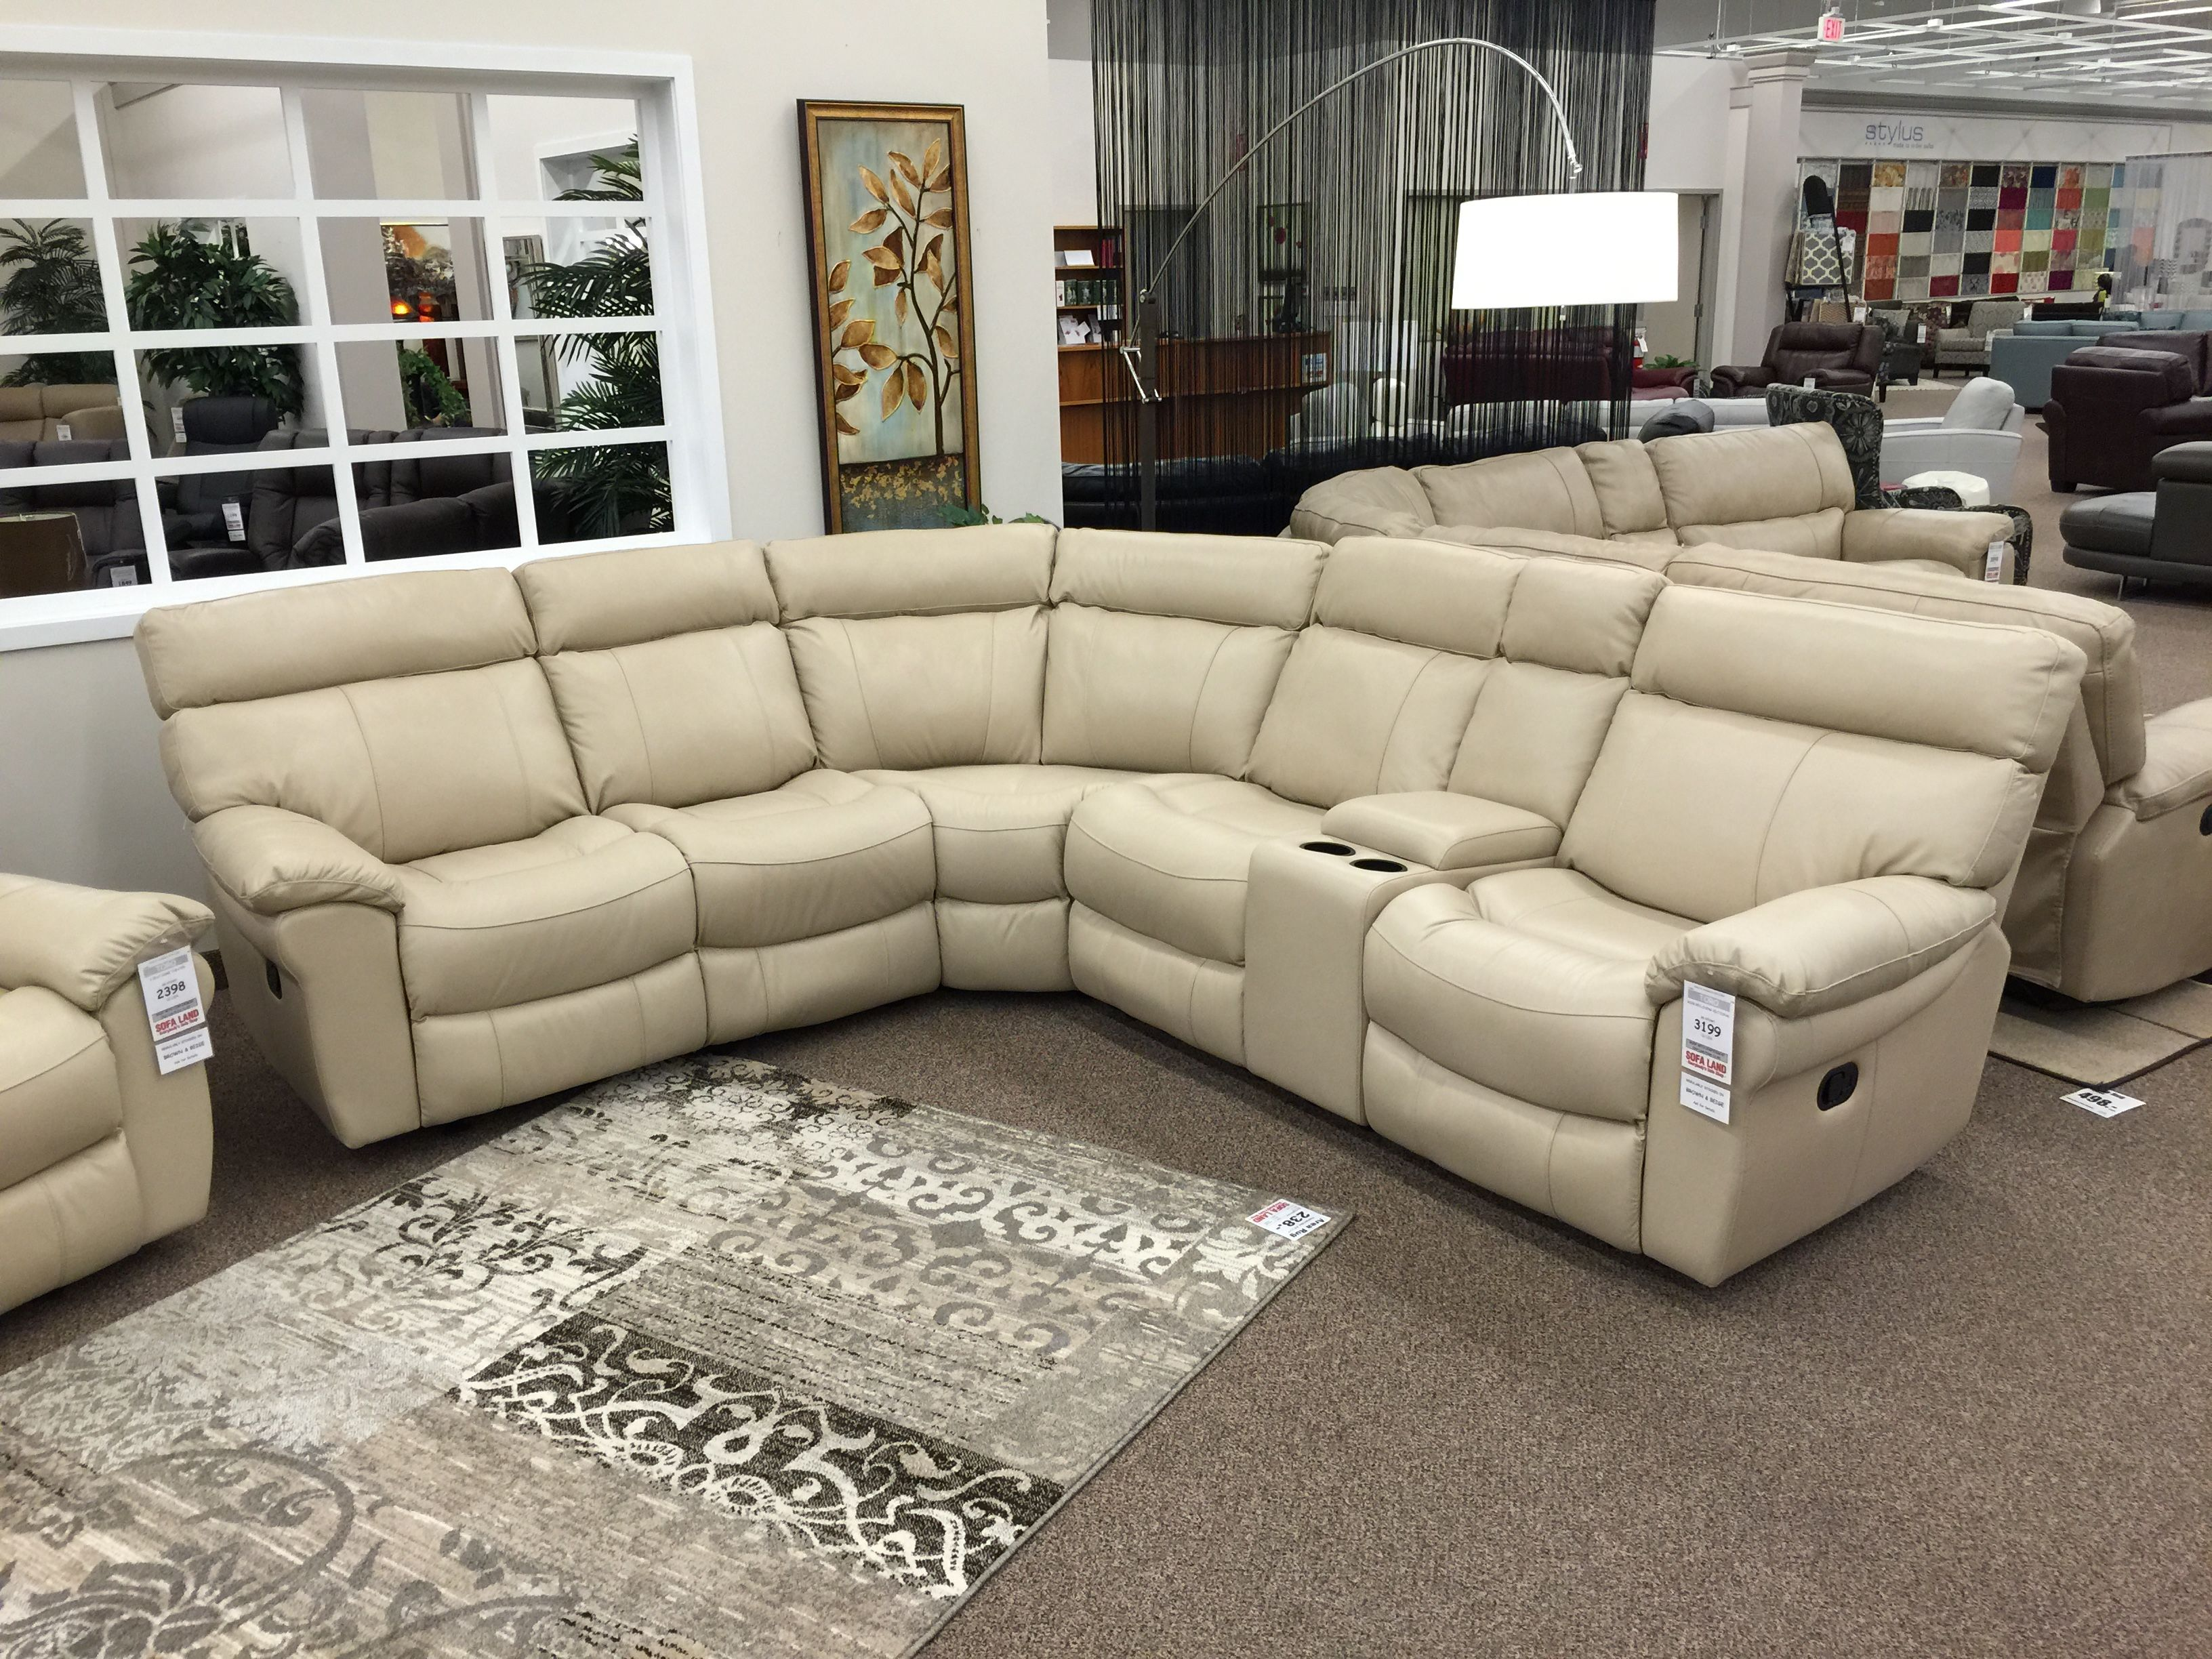 Sofaland zeus couch refil sofa for Sofaland couch